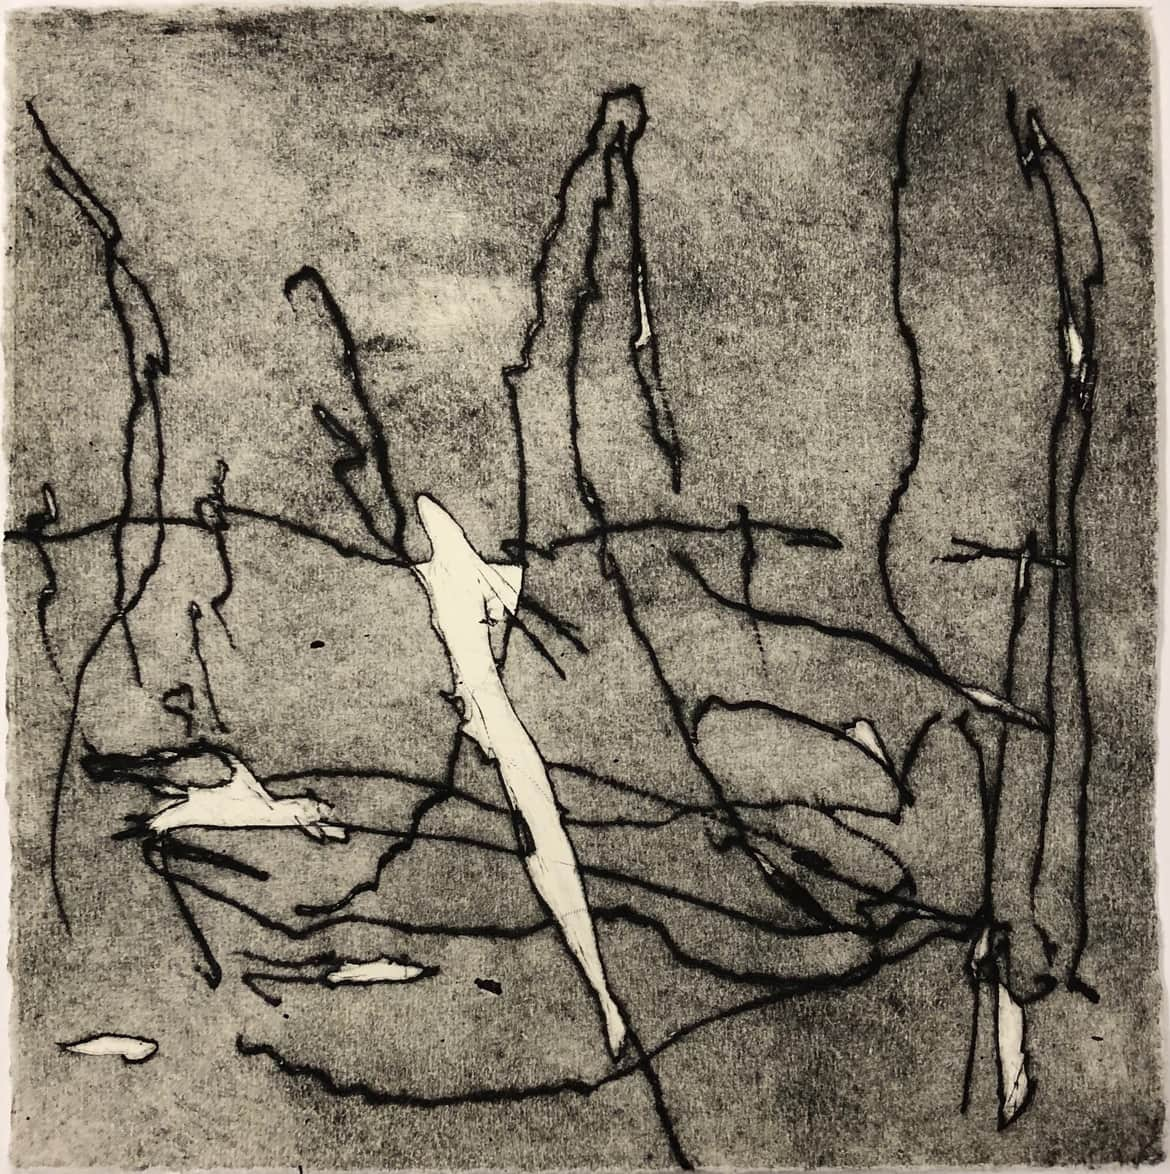 'The other side of stone', 2018, drypoint on Hahnemuhle 300 gsm paper, 25 x 25 cm, edition of 3 + 1 AP